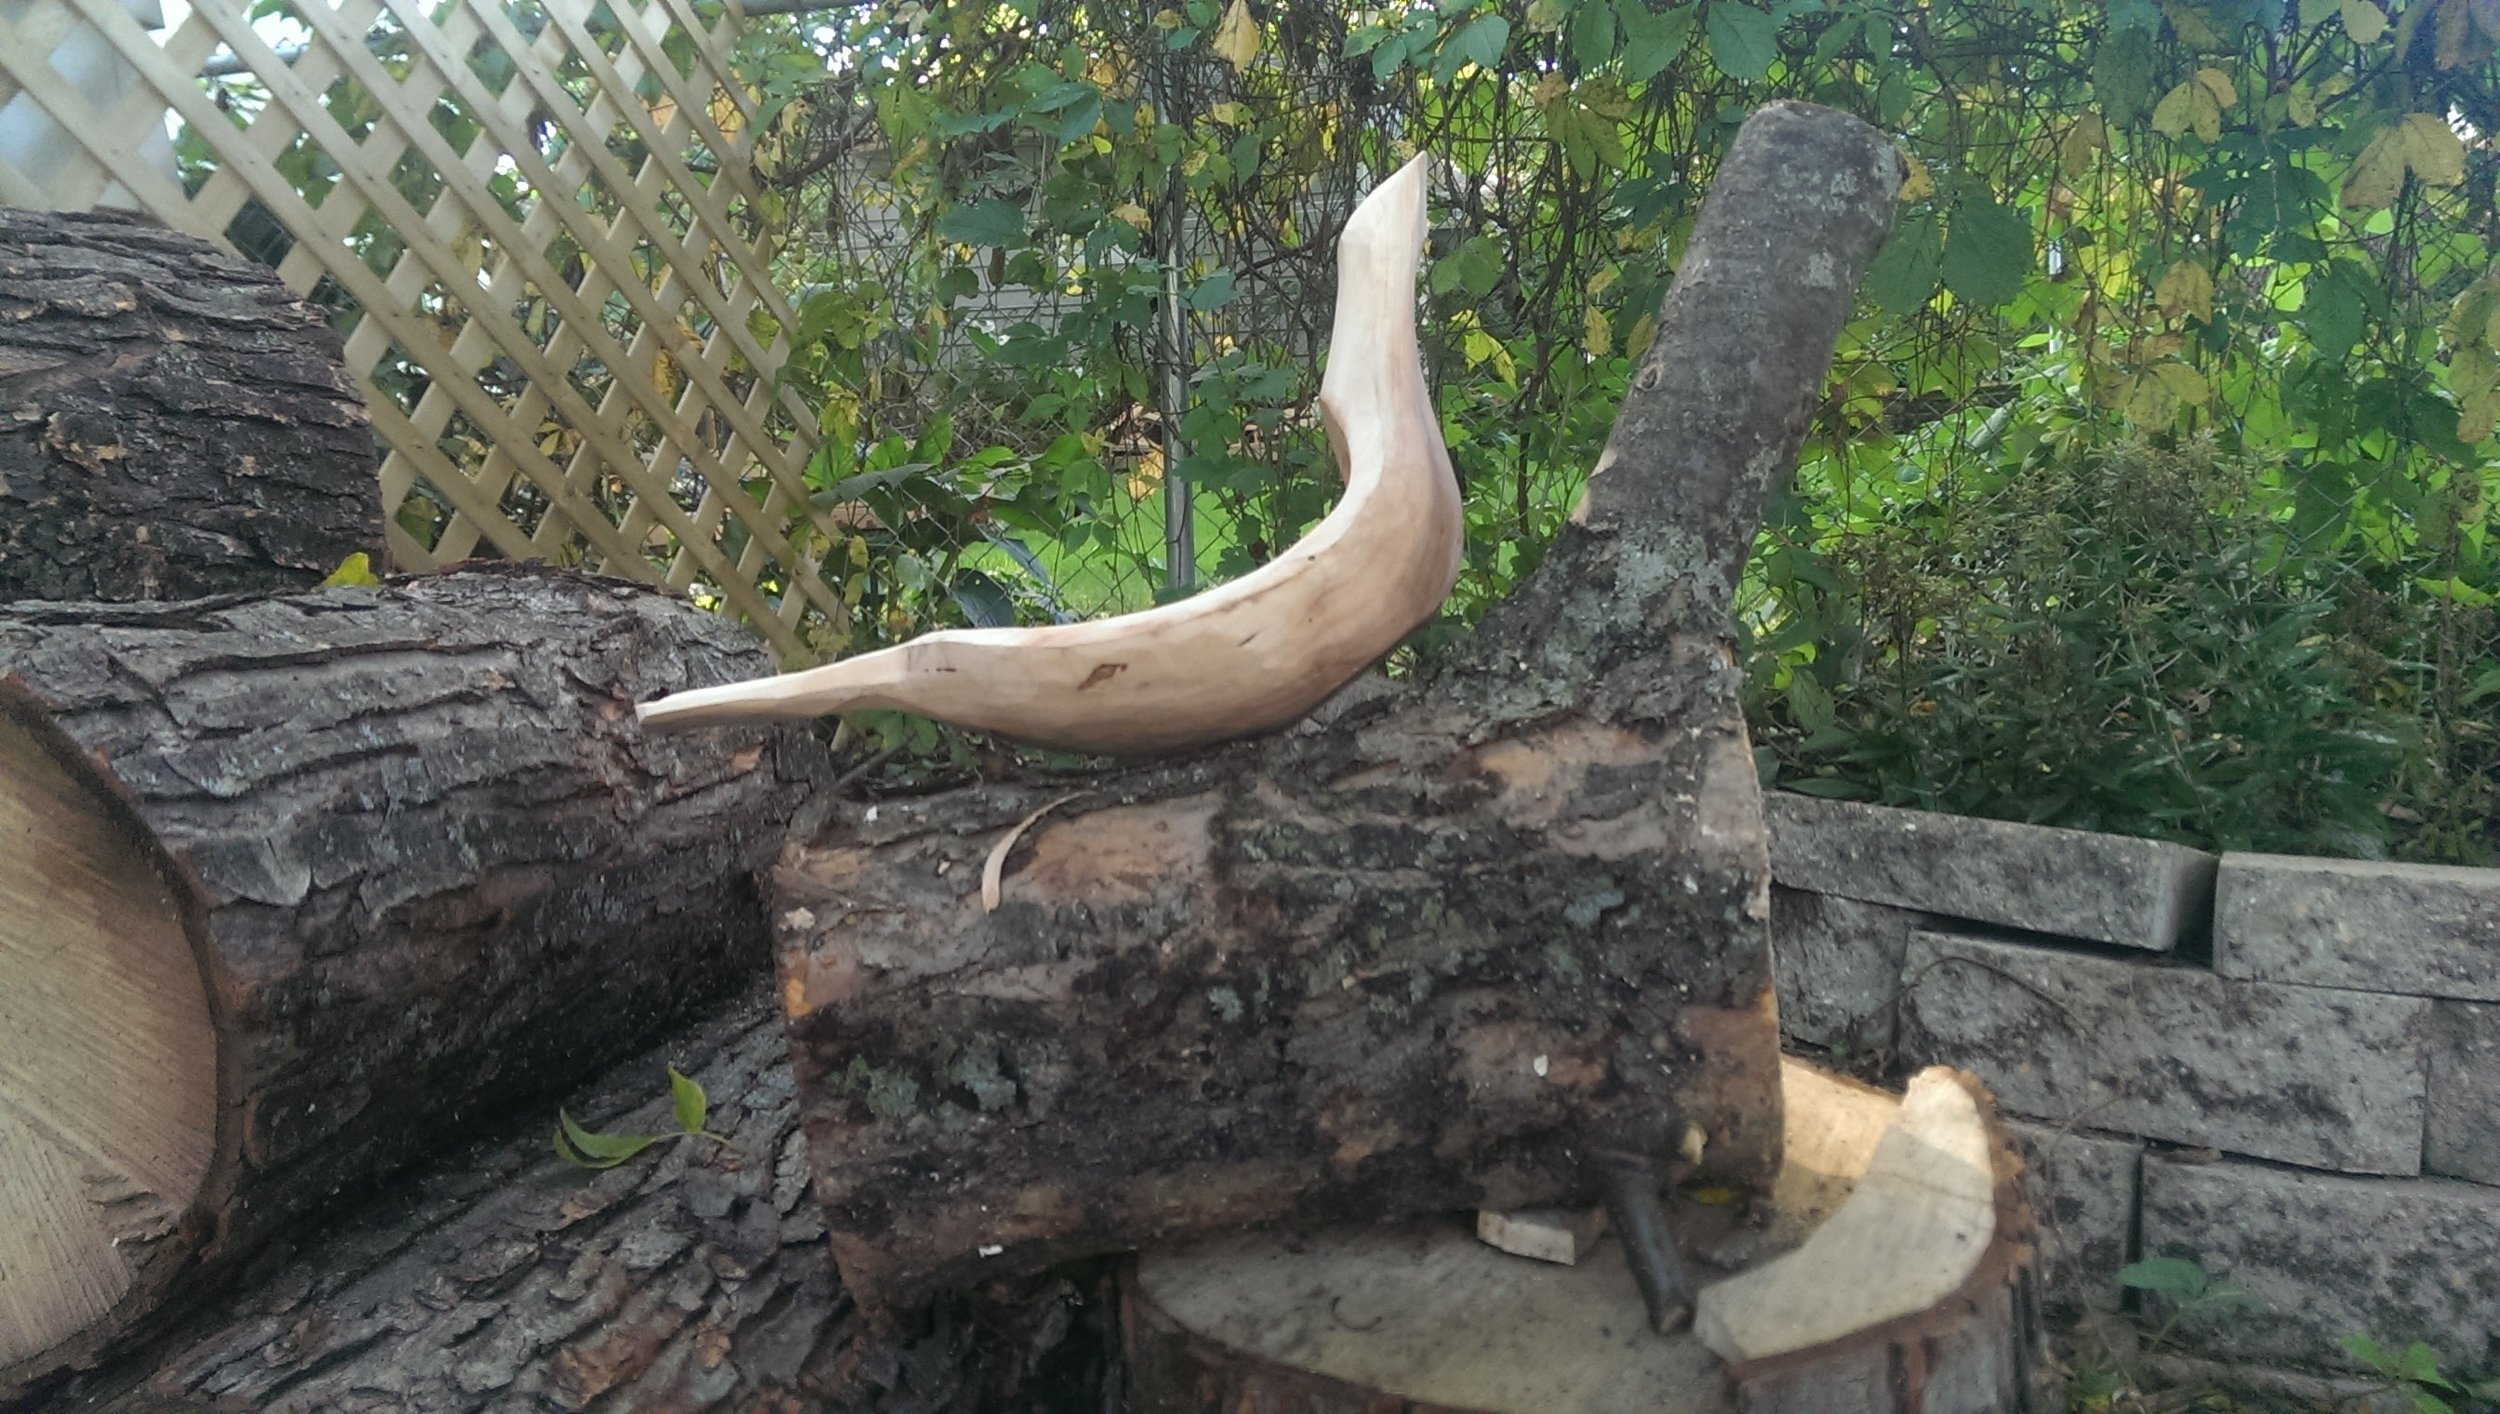 An almost finished bird bowl, sitting atop a log ready to become another bird bowl